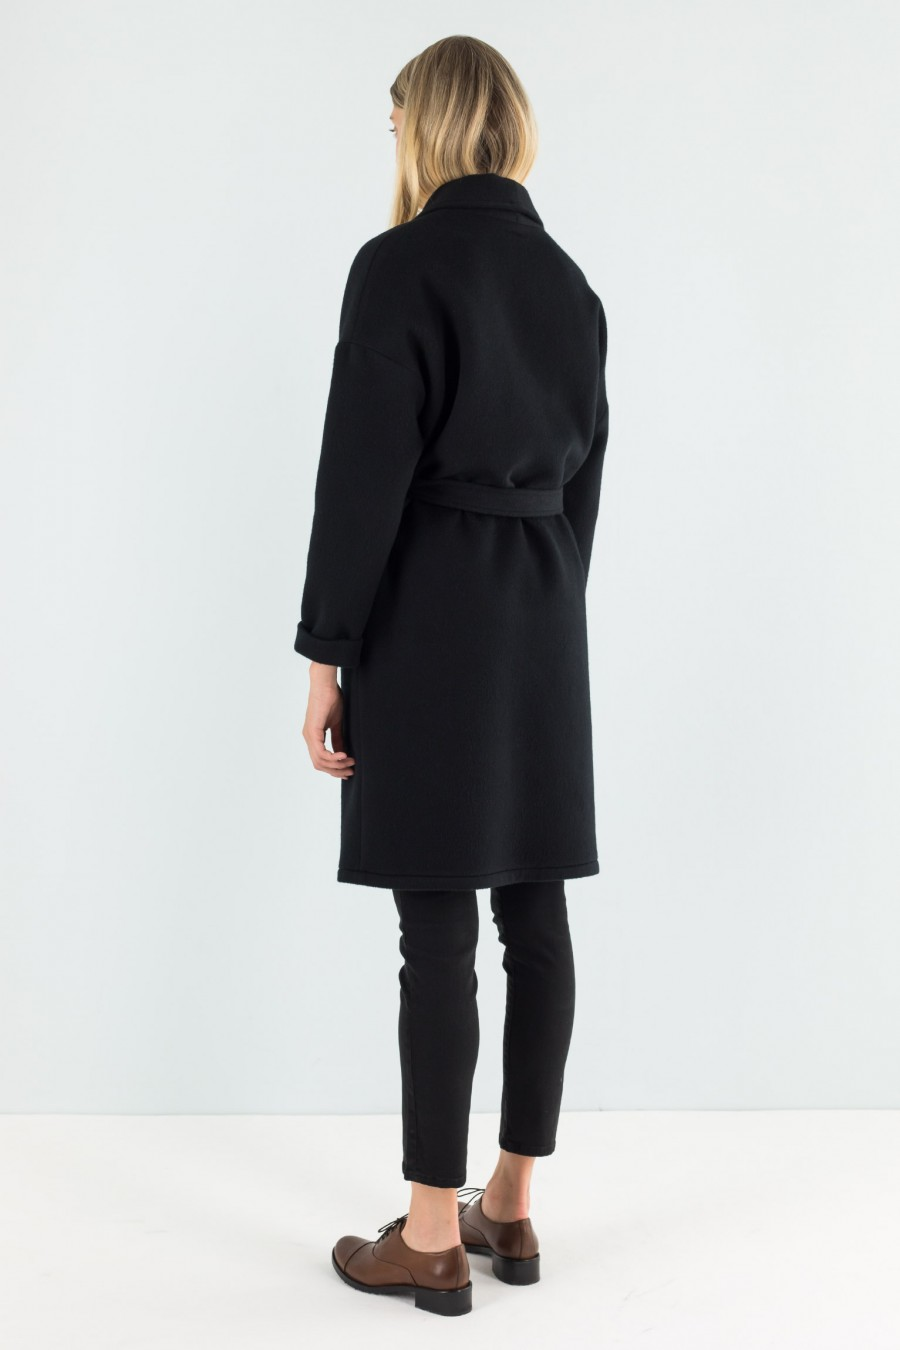 Black cashmere coat with belt